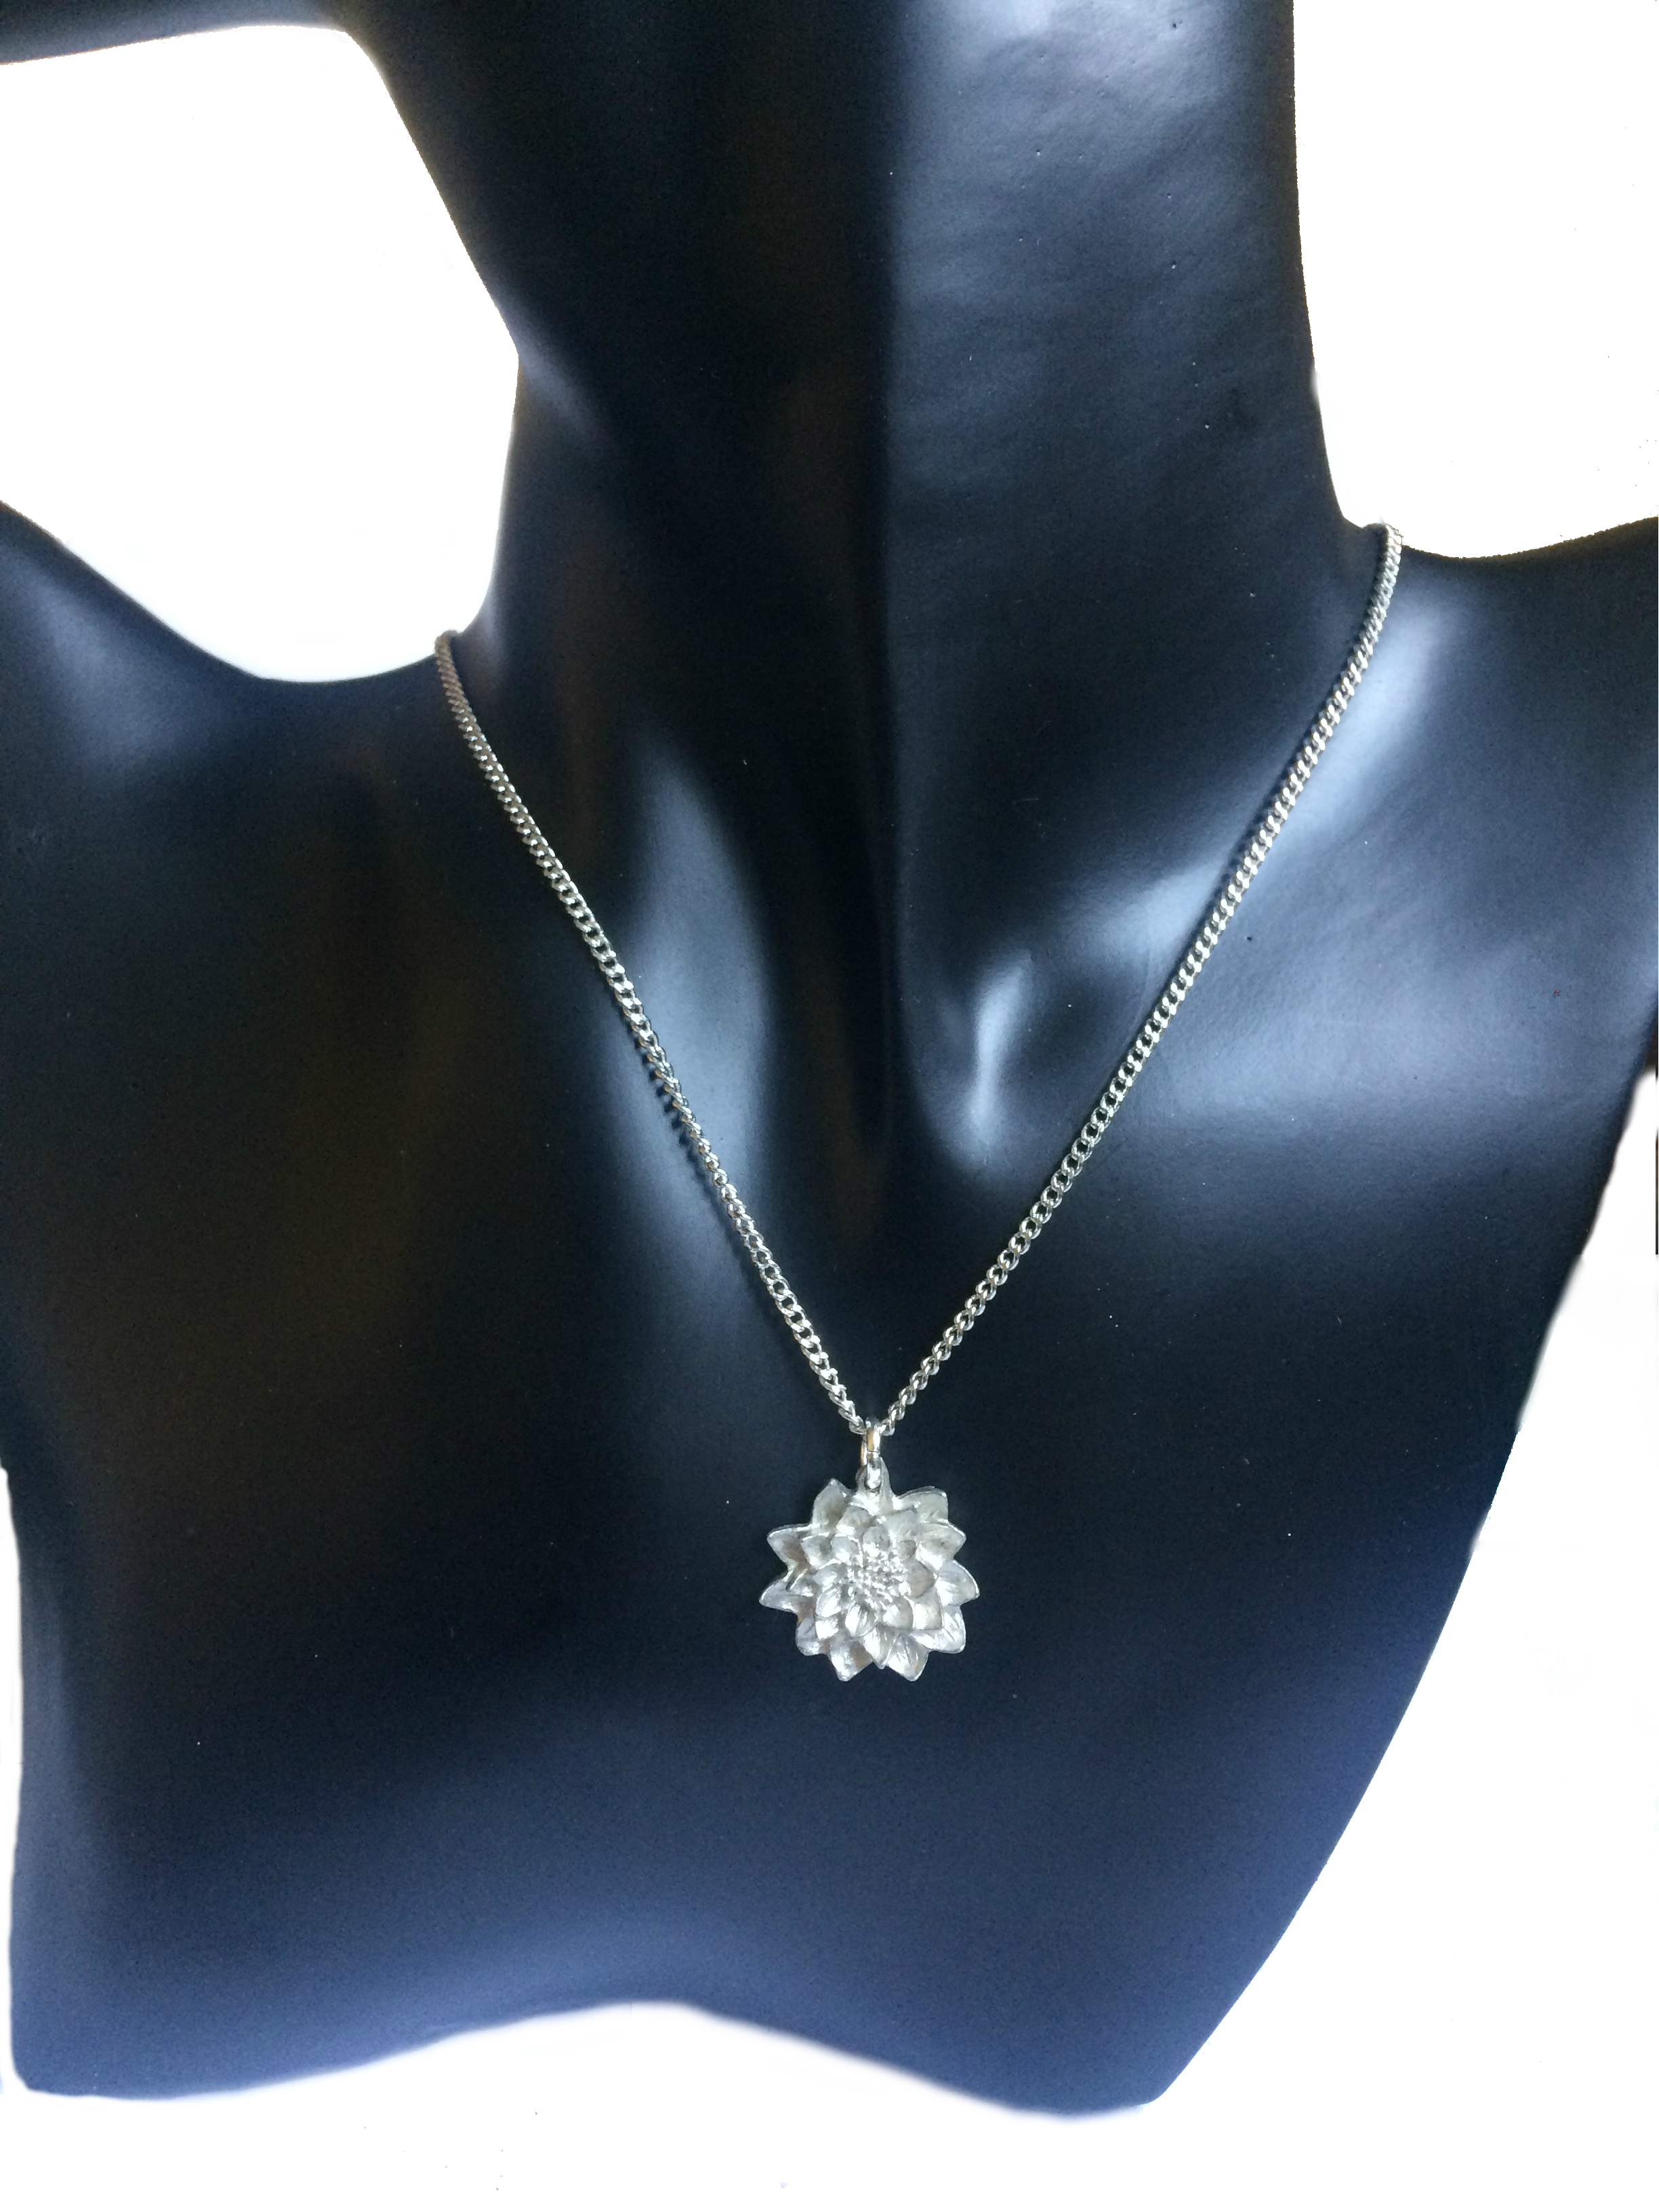 Water Lily Claude Monet Necklace And Earring Set Fine English Pewter